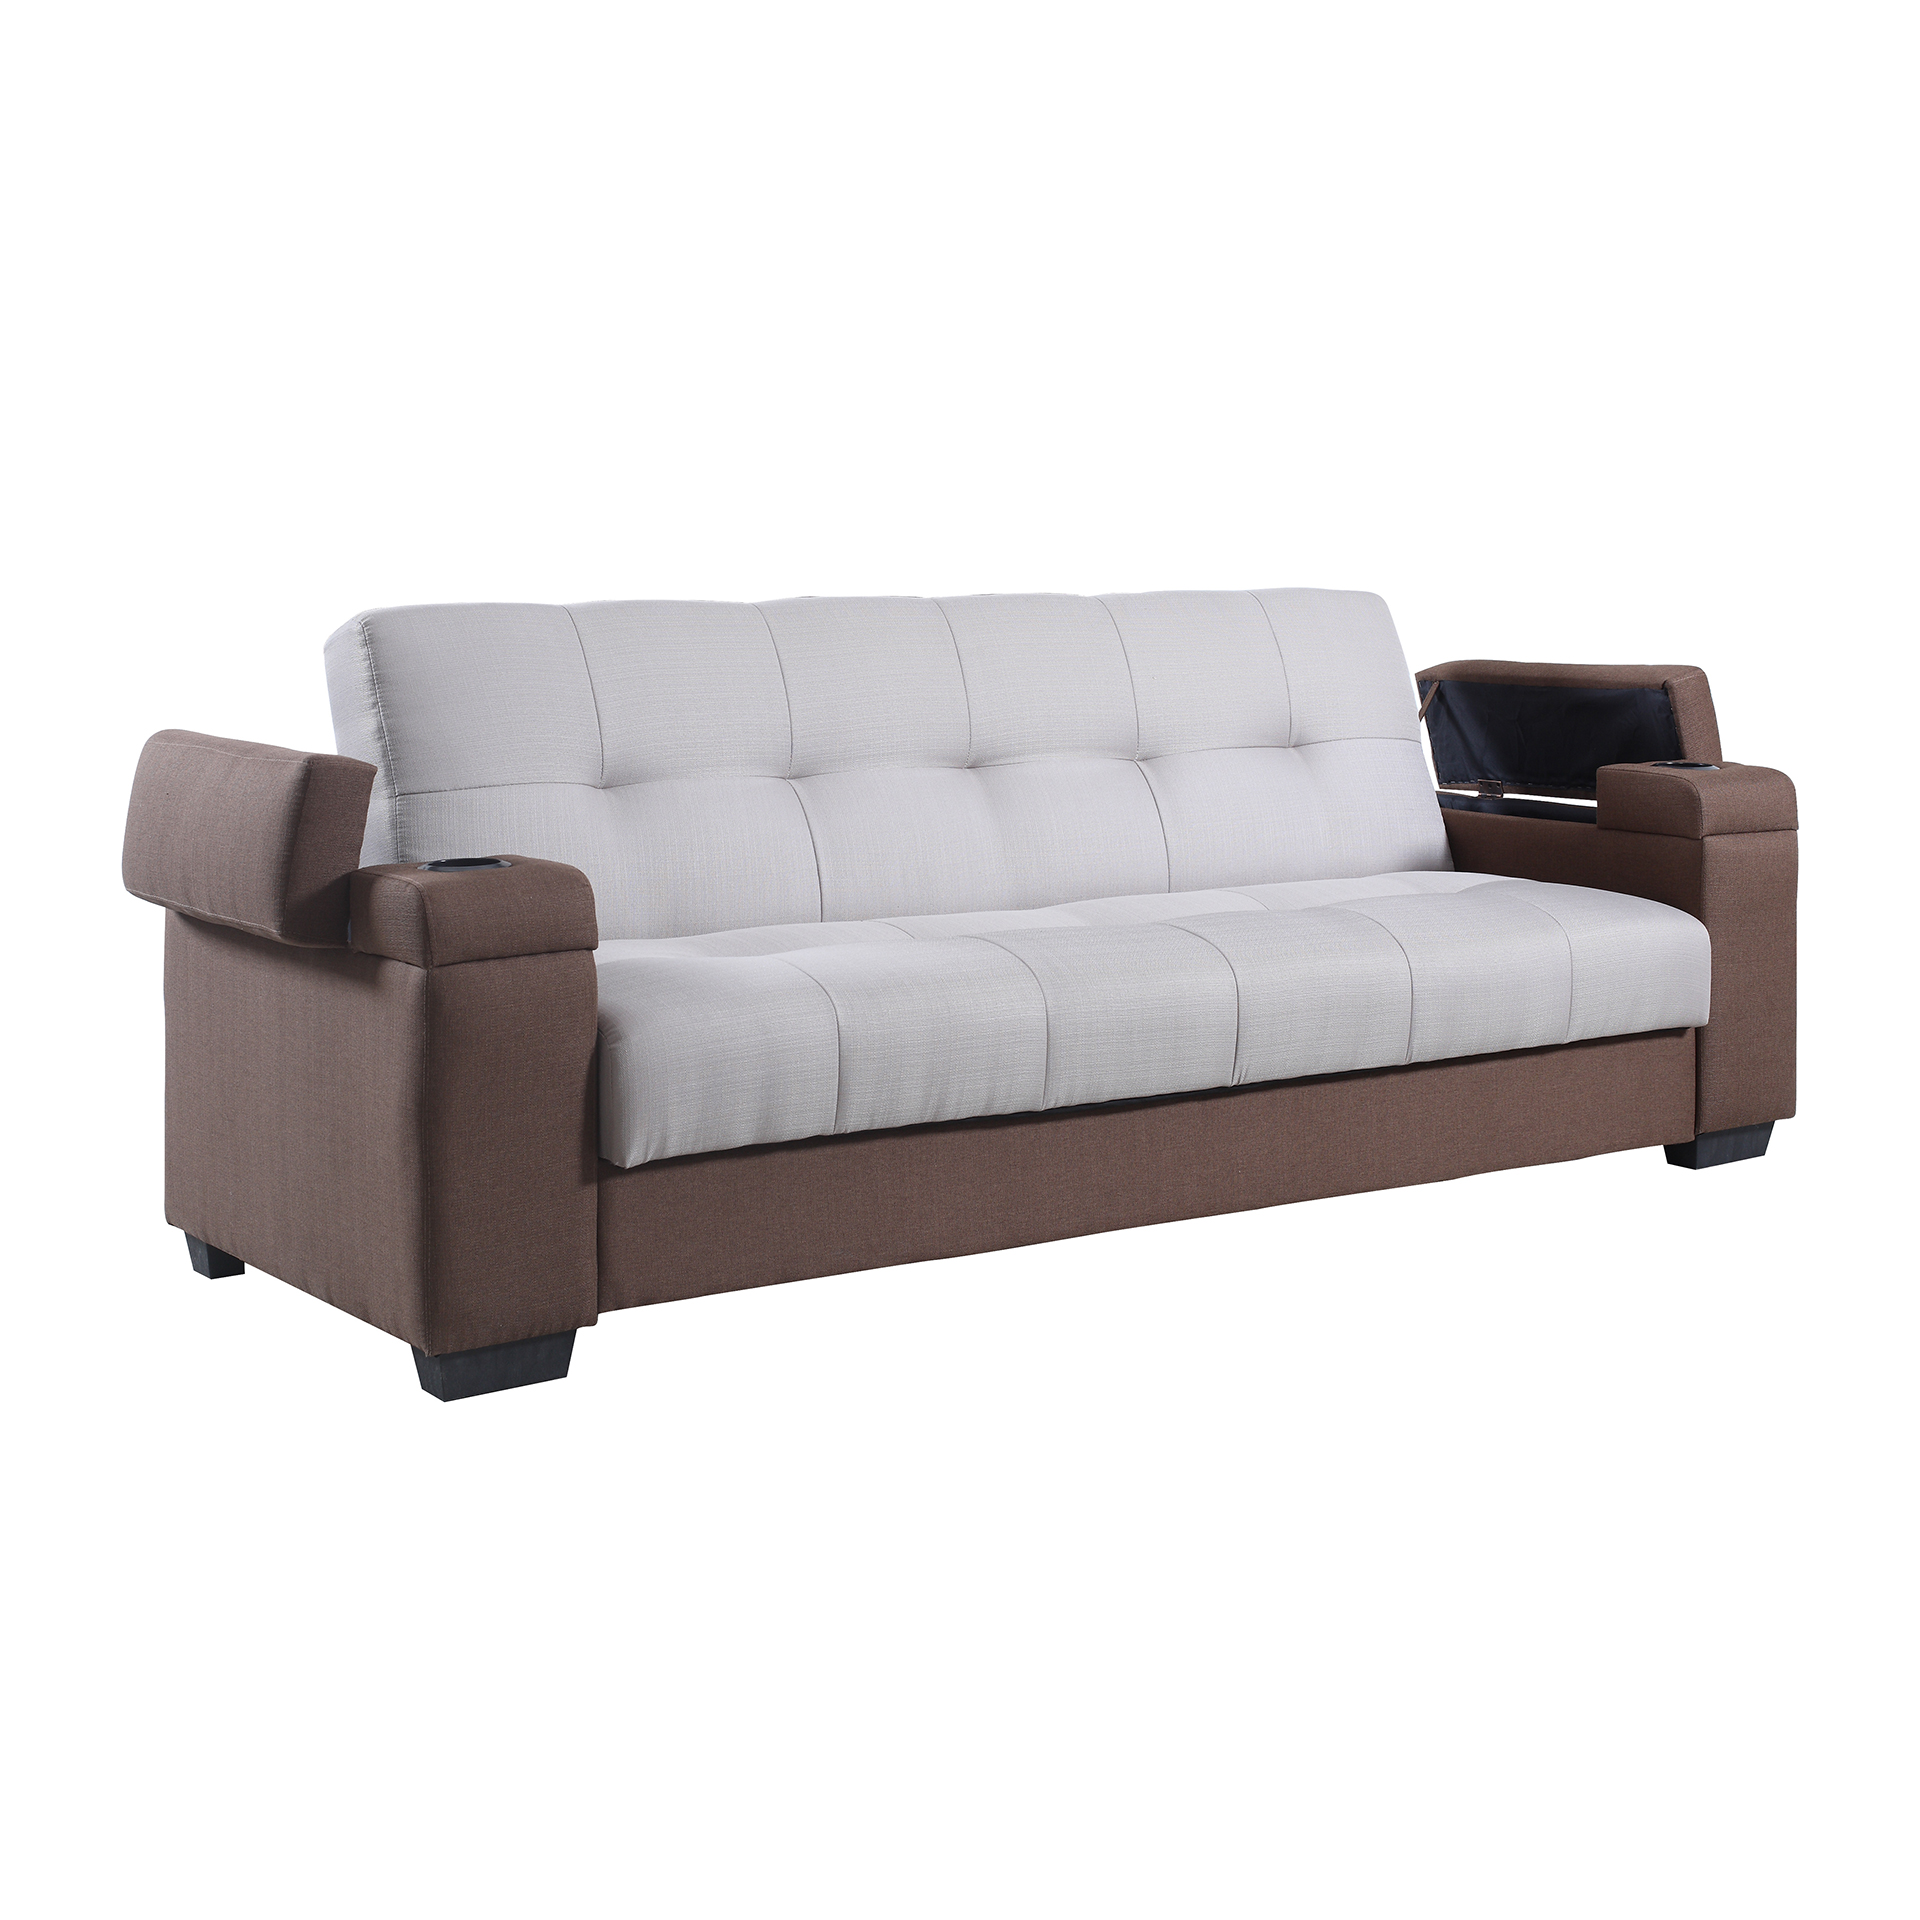 sofa with pull out bed philippines coffee table distance makati the honoroak